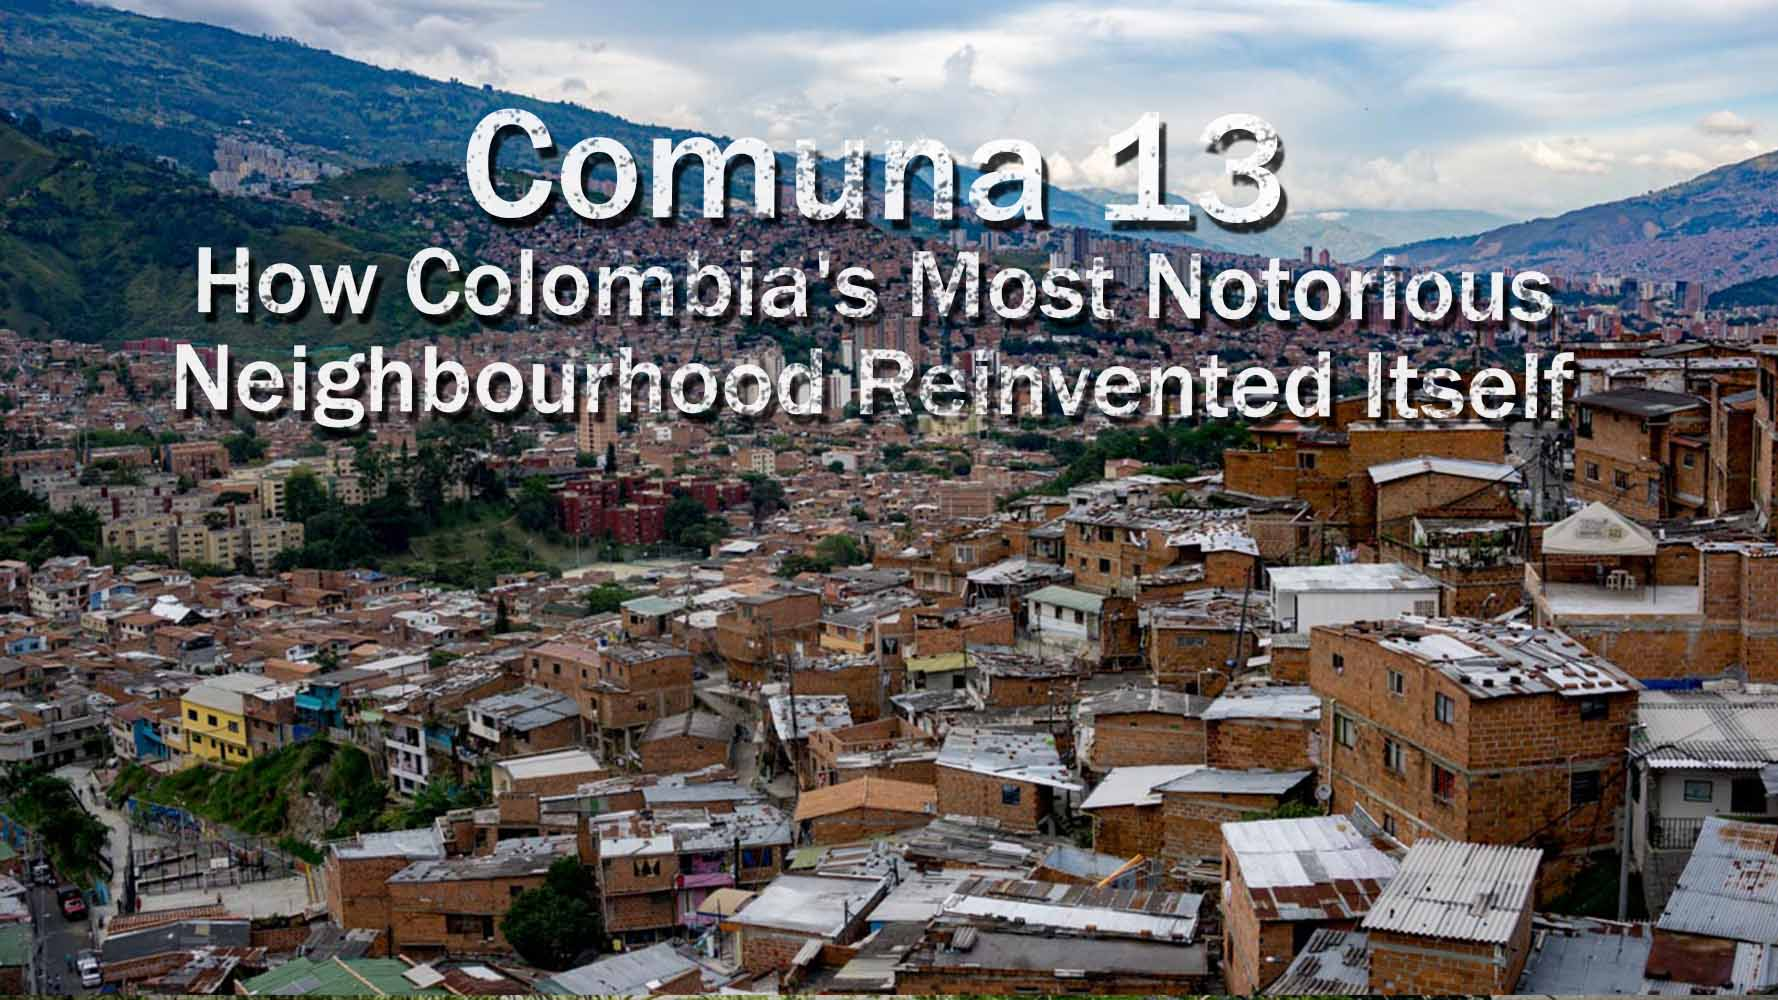 Comuna 13: How Colombia's Most Notorious Neighbourhood Reinvented Itself